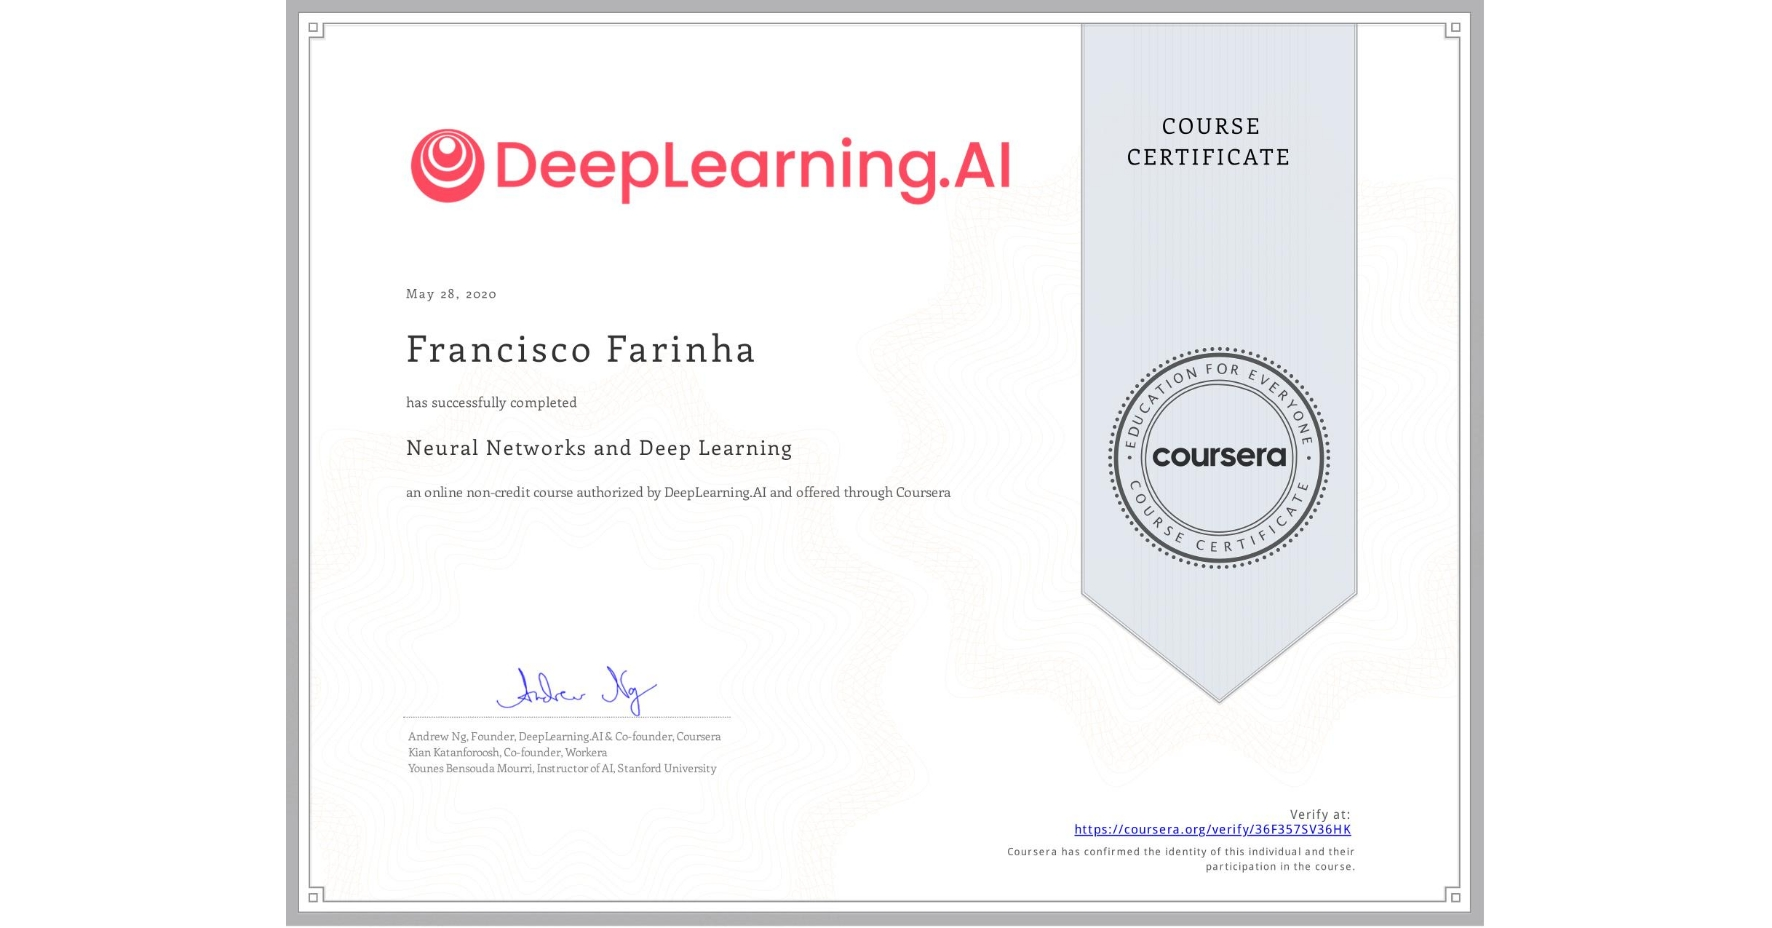 View certificate for Francisco Farinha, Neural Networks and Deep Learning, an online non-credit course authorized by DeepLearning.AI and offered through Coursera